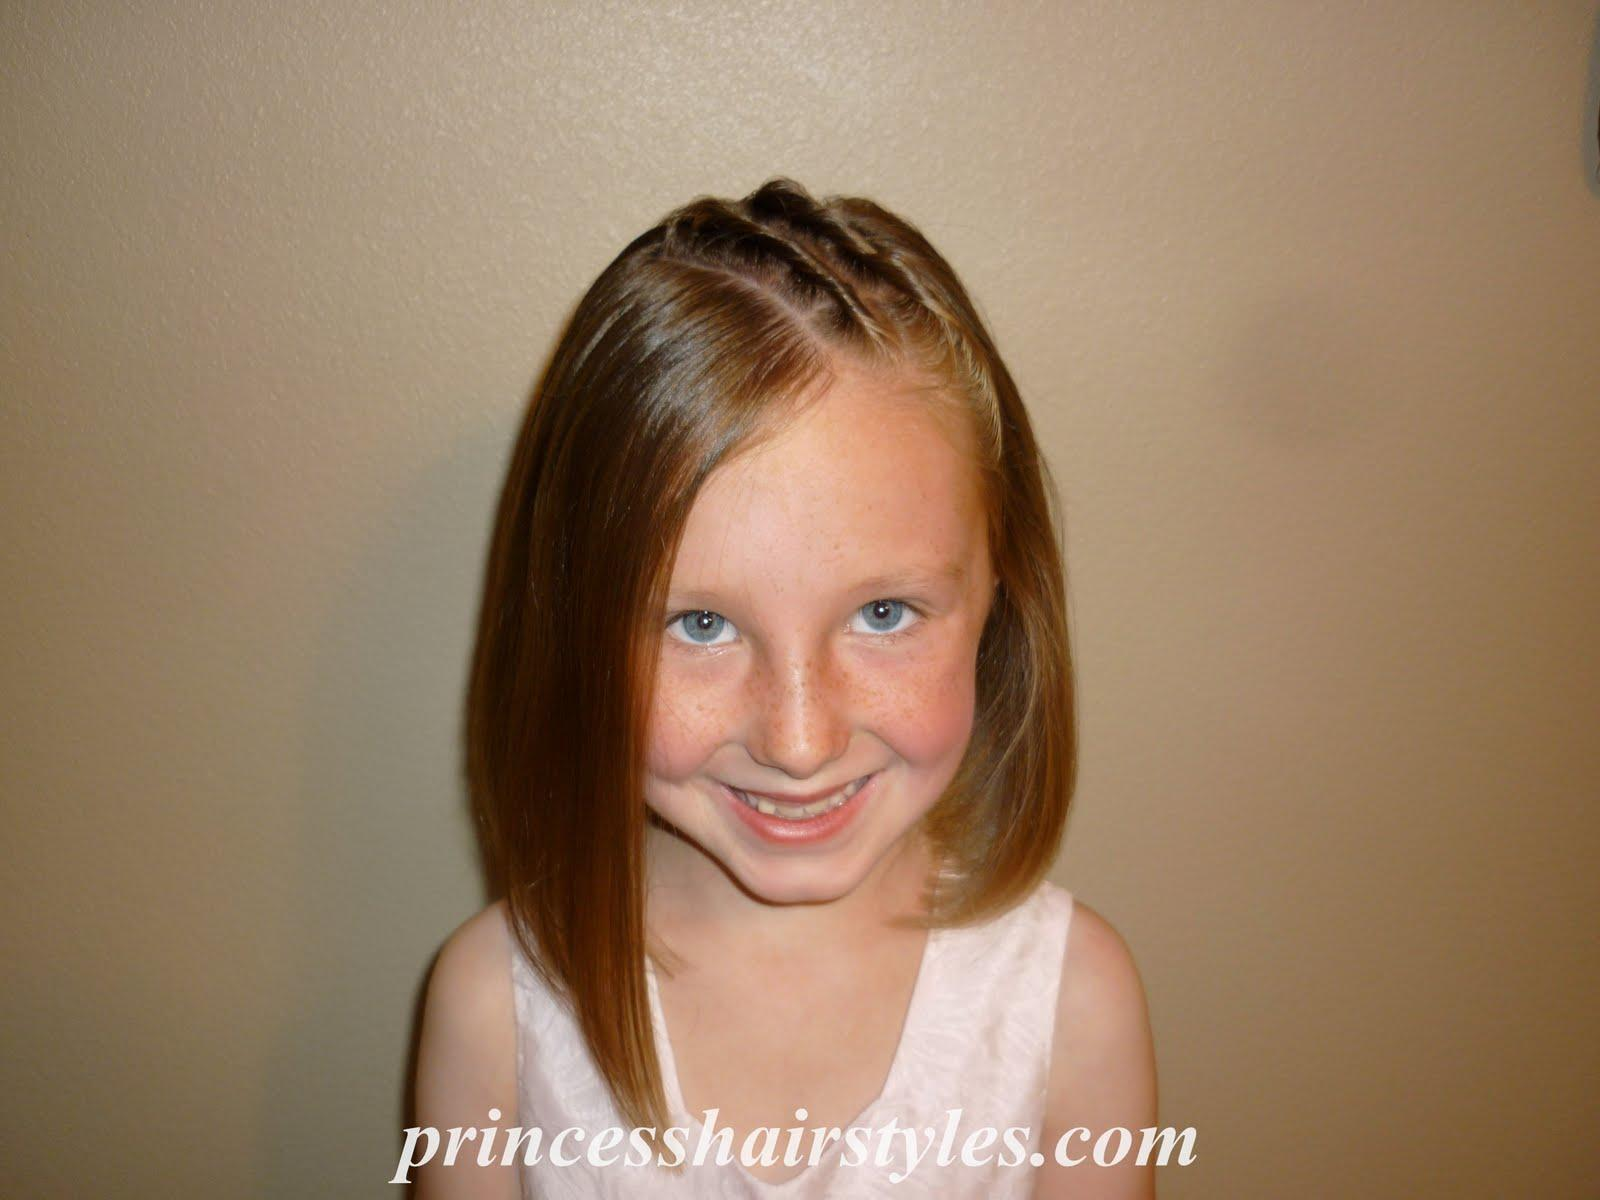 Short Hair Styles For Little Girls  Sophie Hairstyles - 12